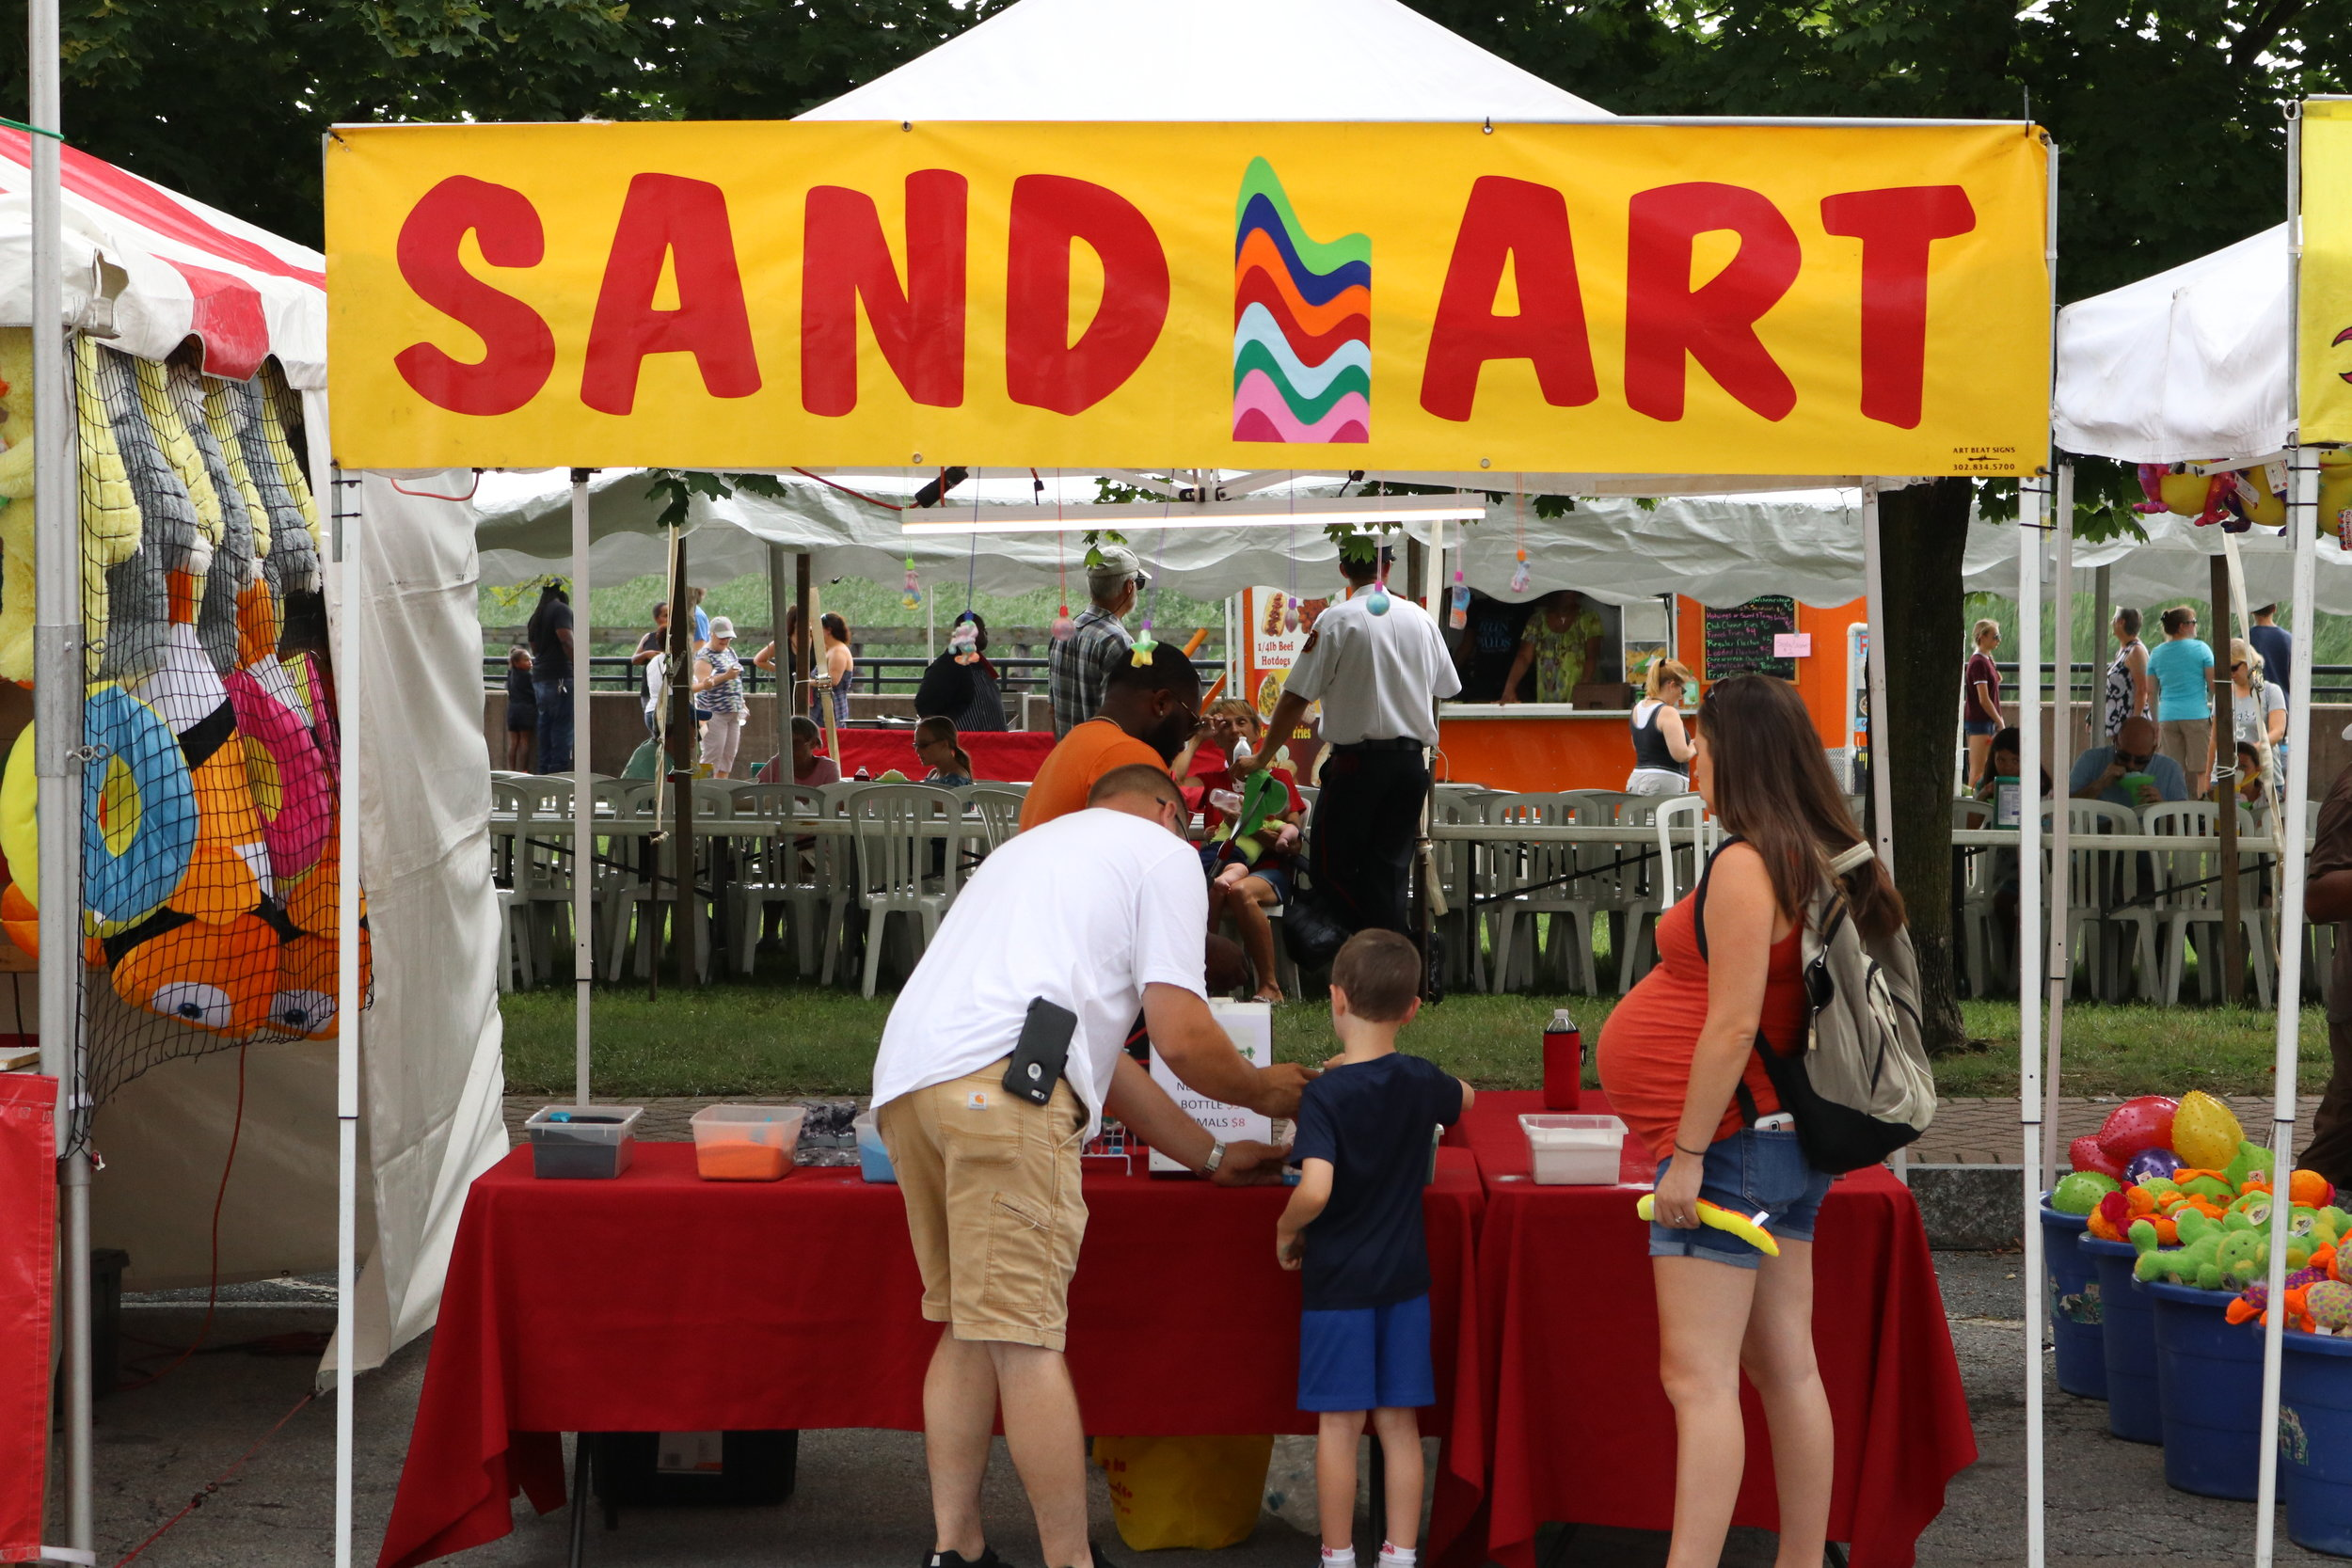 Sand Art - Everyone has an artistic side of them, express that side of your self and make something beautiful and timeless.